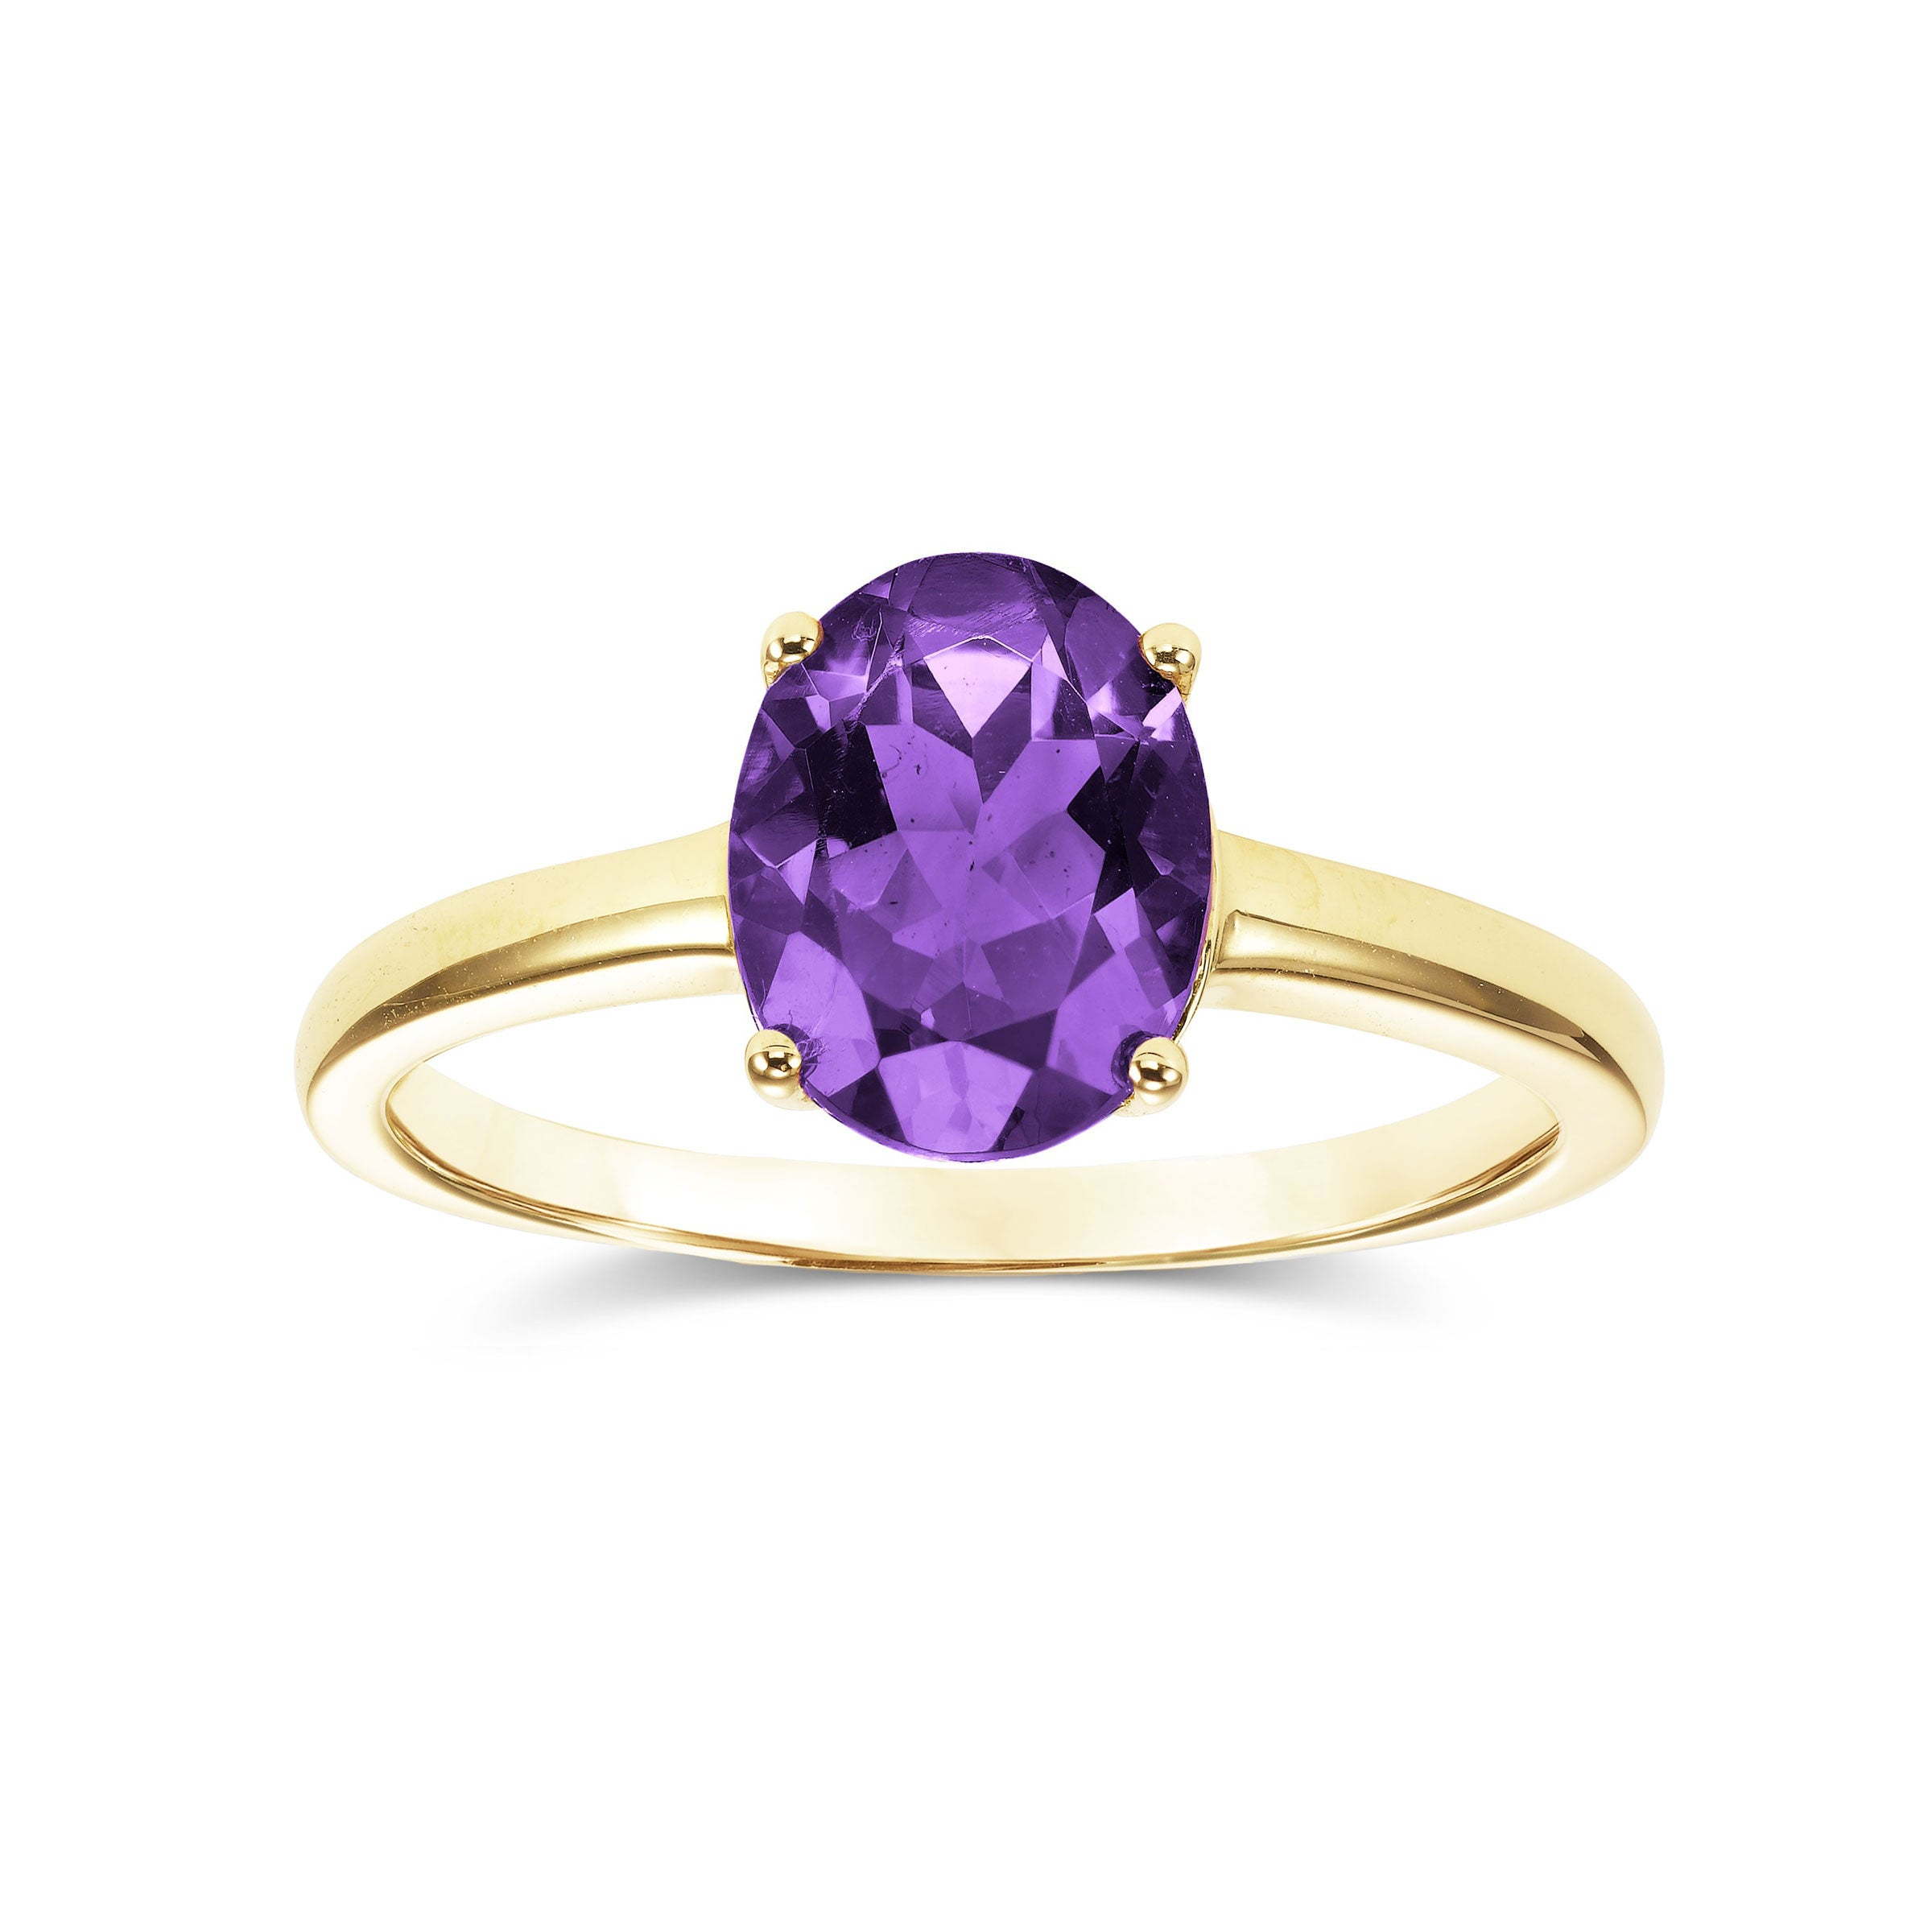 Oval Cut Amethyst Ring, 14K Yellow Gold